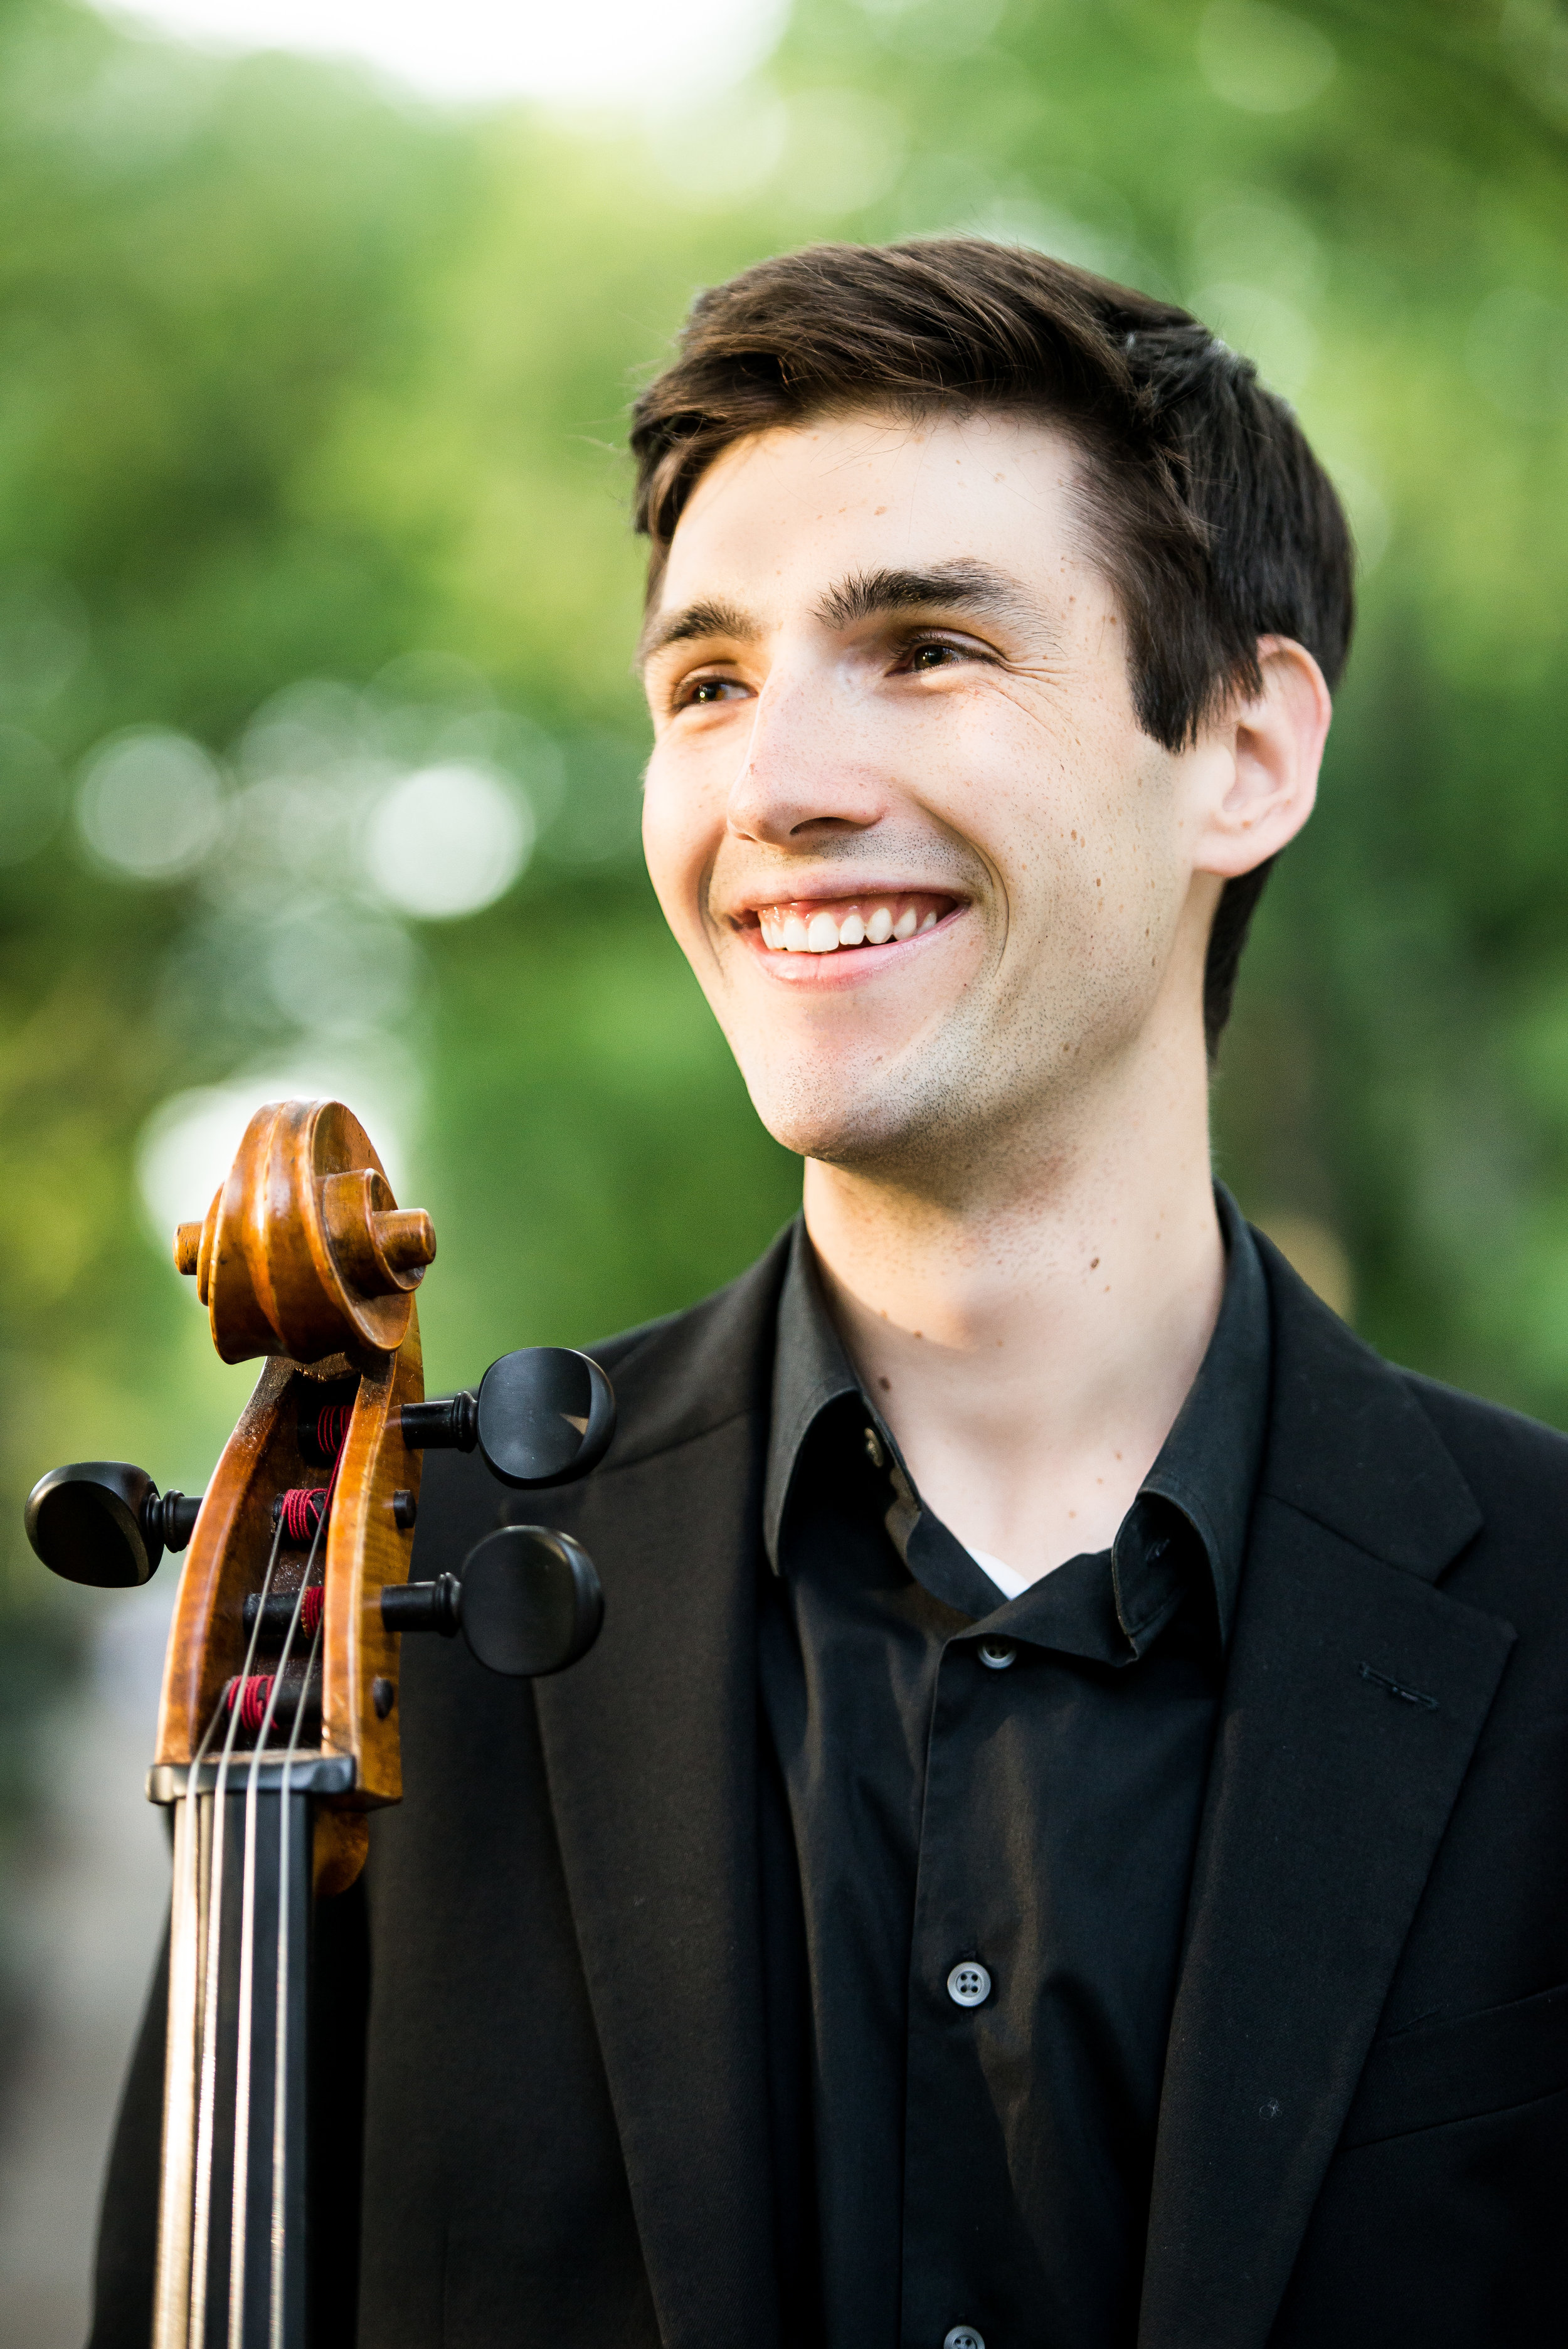 """Praised as """"an artist with an already expanding reputation and great future"""" ( The Well-Tempered Ear);  cellist Andrew Briggs is a world traveler. Recent performances include recitals in Bergen, Netherlands and Narbonne, France; collaborations with the principal cellist of the Royal Concertgebouw Orchestra (Amsterdam, NL); performances in Paul Hall, NYC; with Axiom Contemporary Ensemble in Alice Tully Hall, NYC; and concerto appearances in Wisconsin and Colorado. Last season, Andrew has performed pieces by Dvorak with the Middleton Community Orchestra, chamber music performances as member of the Elmwood String Trio, and in the cello sections of the Madison Symphony, the Colorado Symphony, and the Colorado Music Festival. Completing his Masters Degree at The Juilliard School, he recently graduated from the University of Wisconsin as a Doctoral student of Uri Vardi. His doctoral project, """"Piatti and the Body: An Integrative Approach to Learning the 12 Caprices, Op. 25,"""" can be found on Youtube.com."""